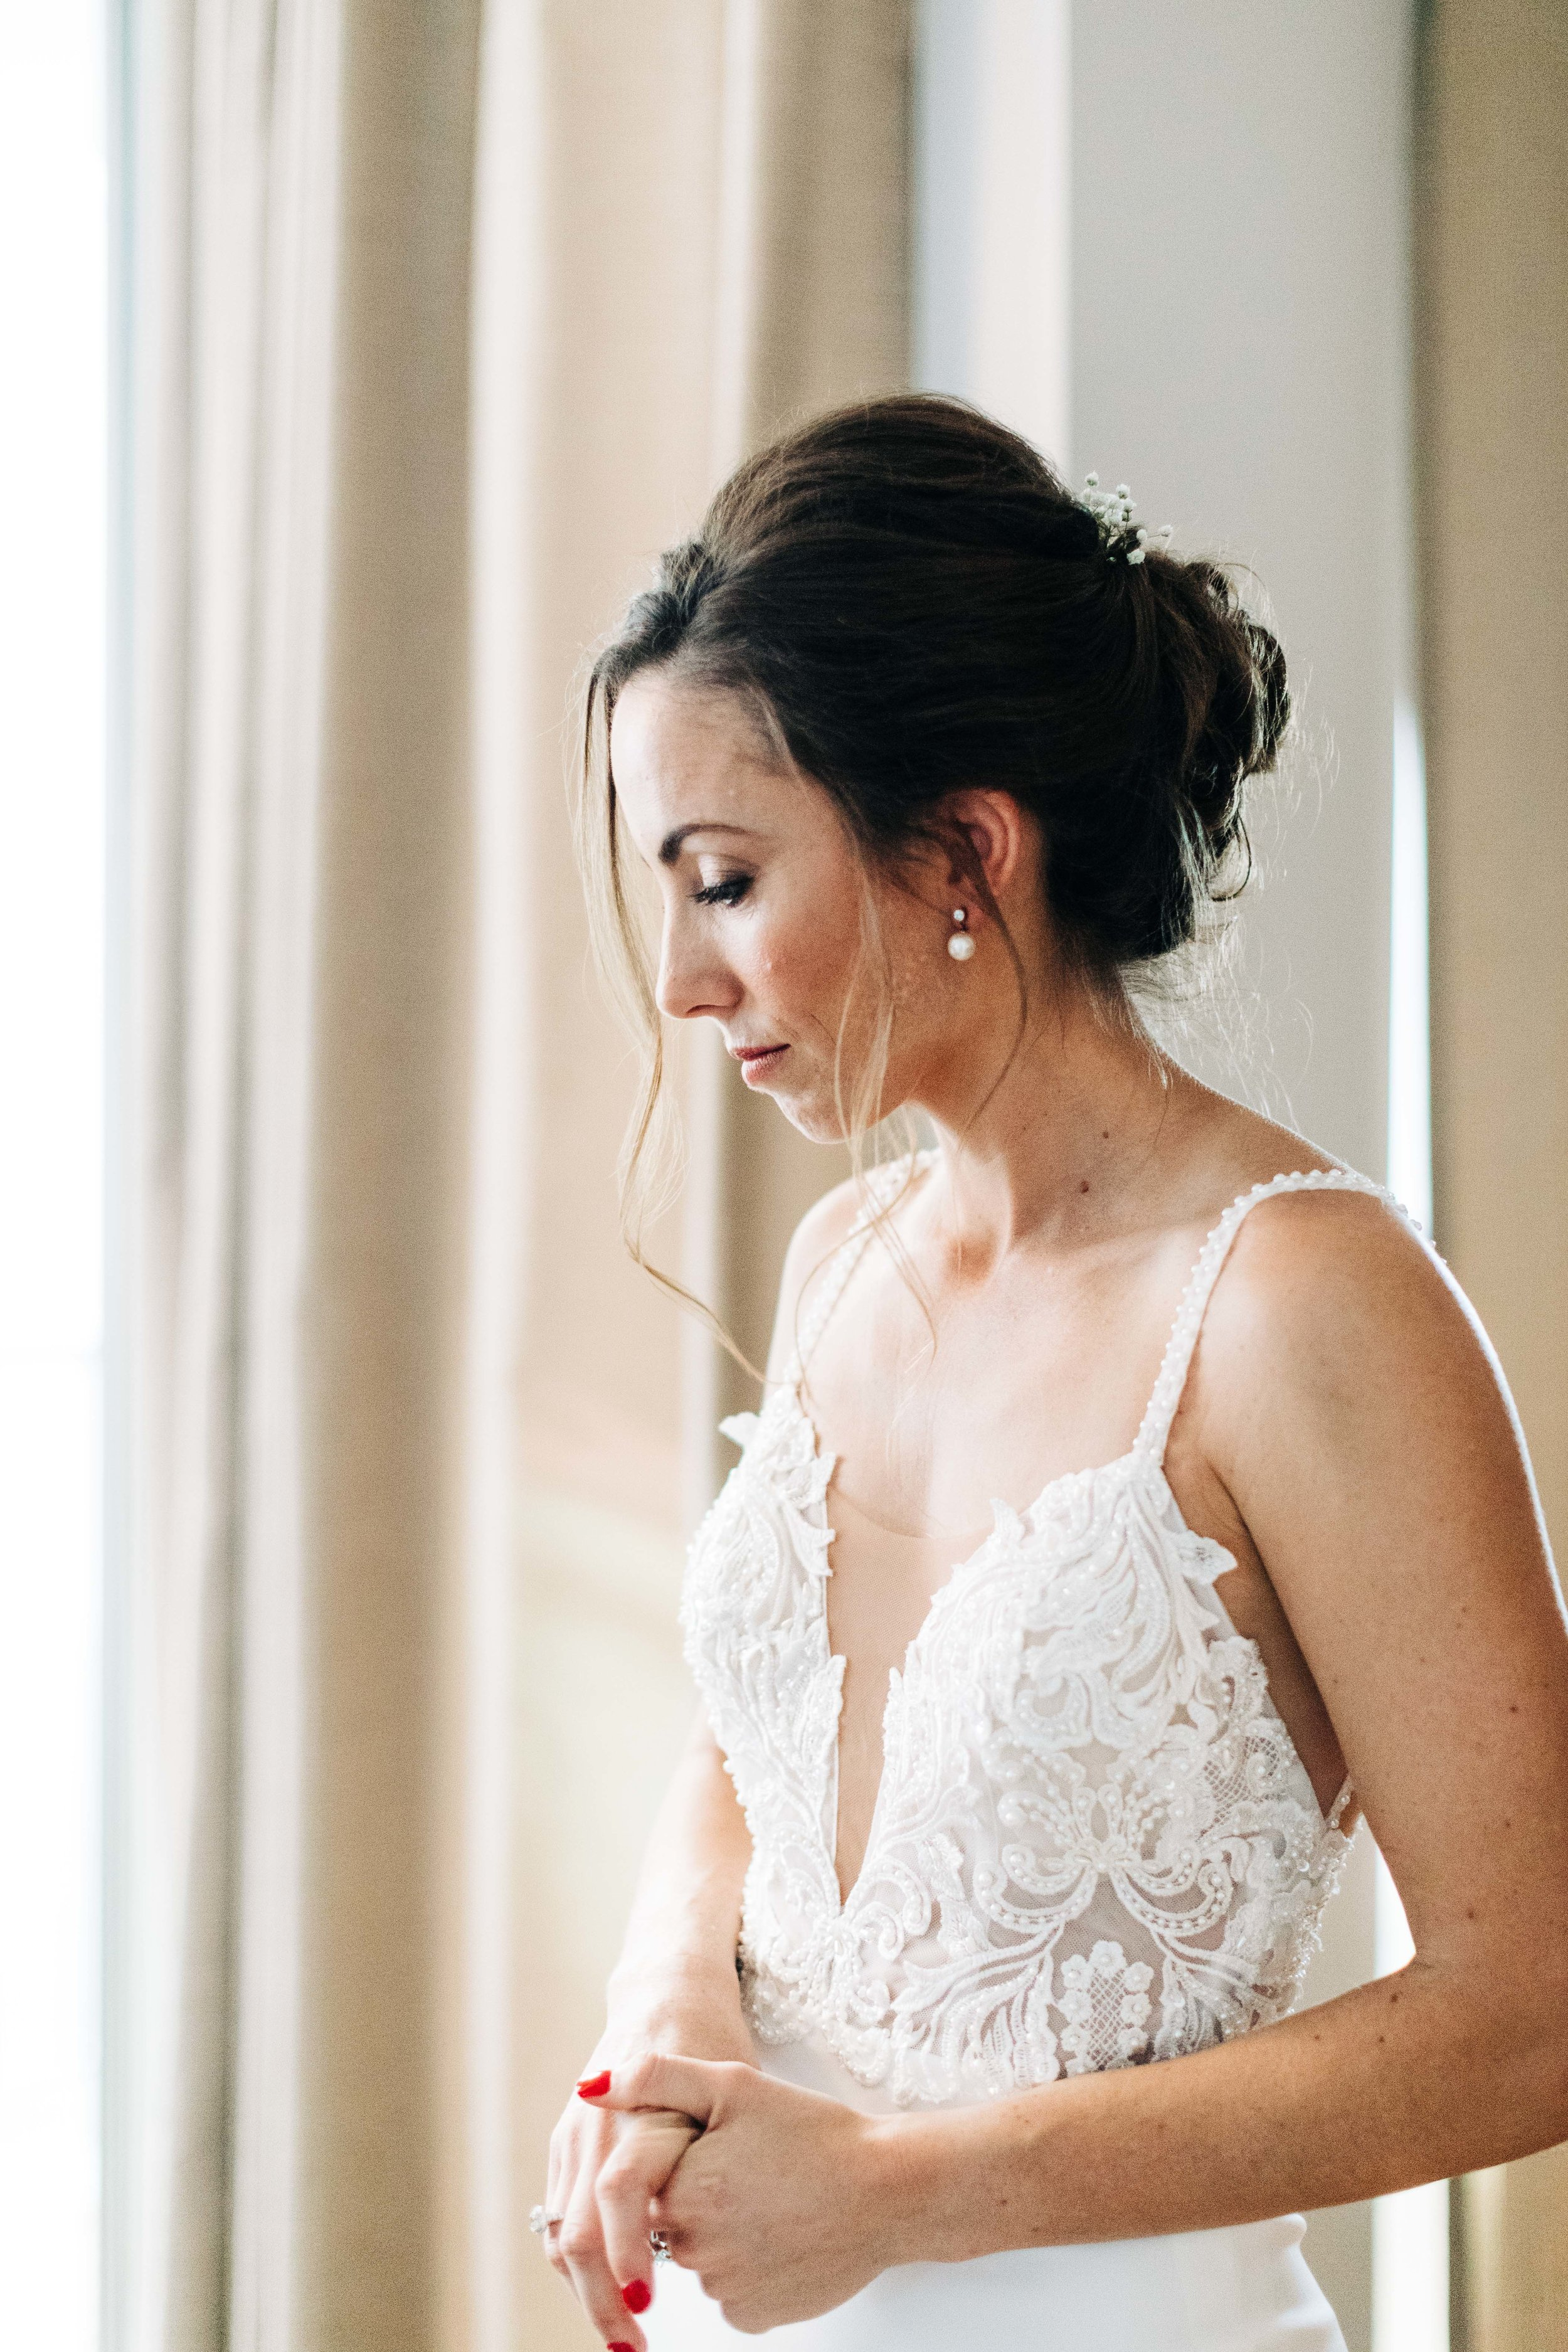 wedding day hair and makeup look complete for this LA bride